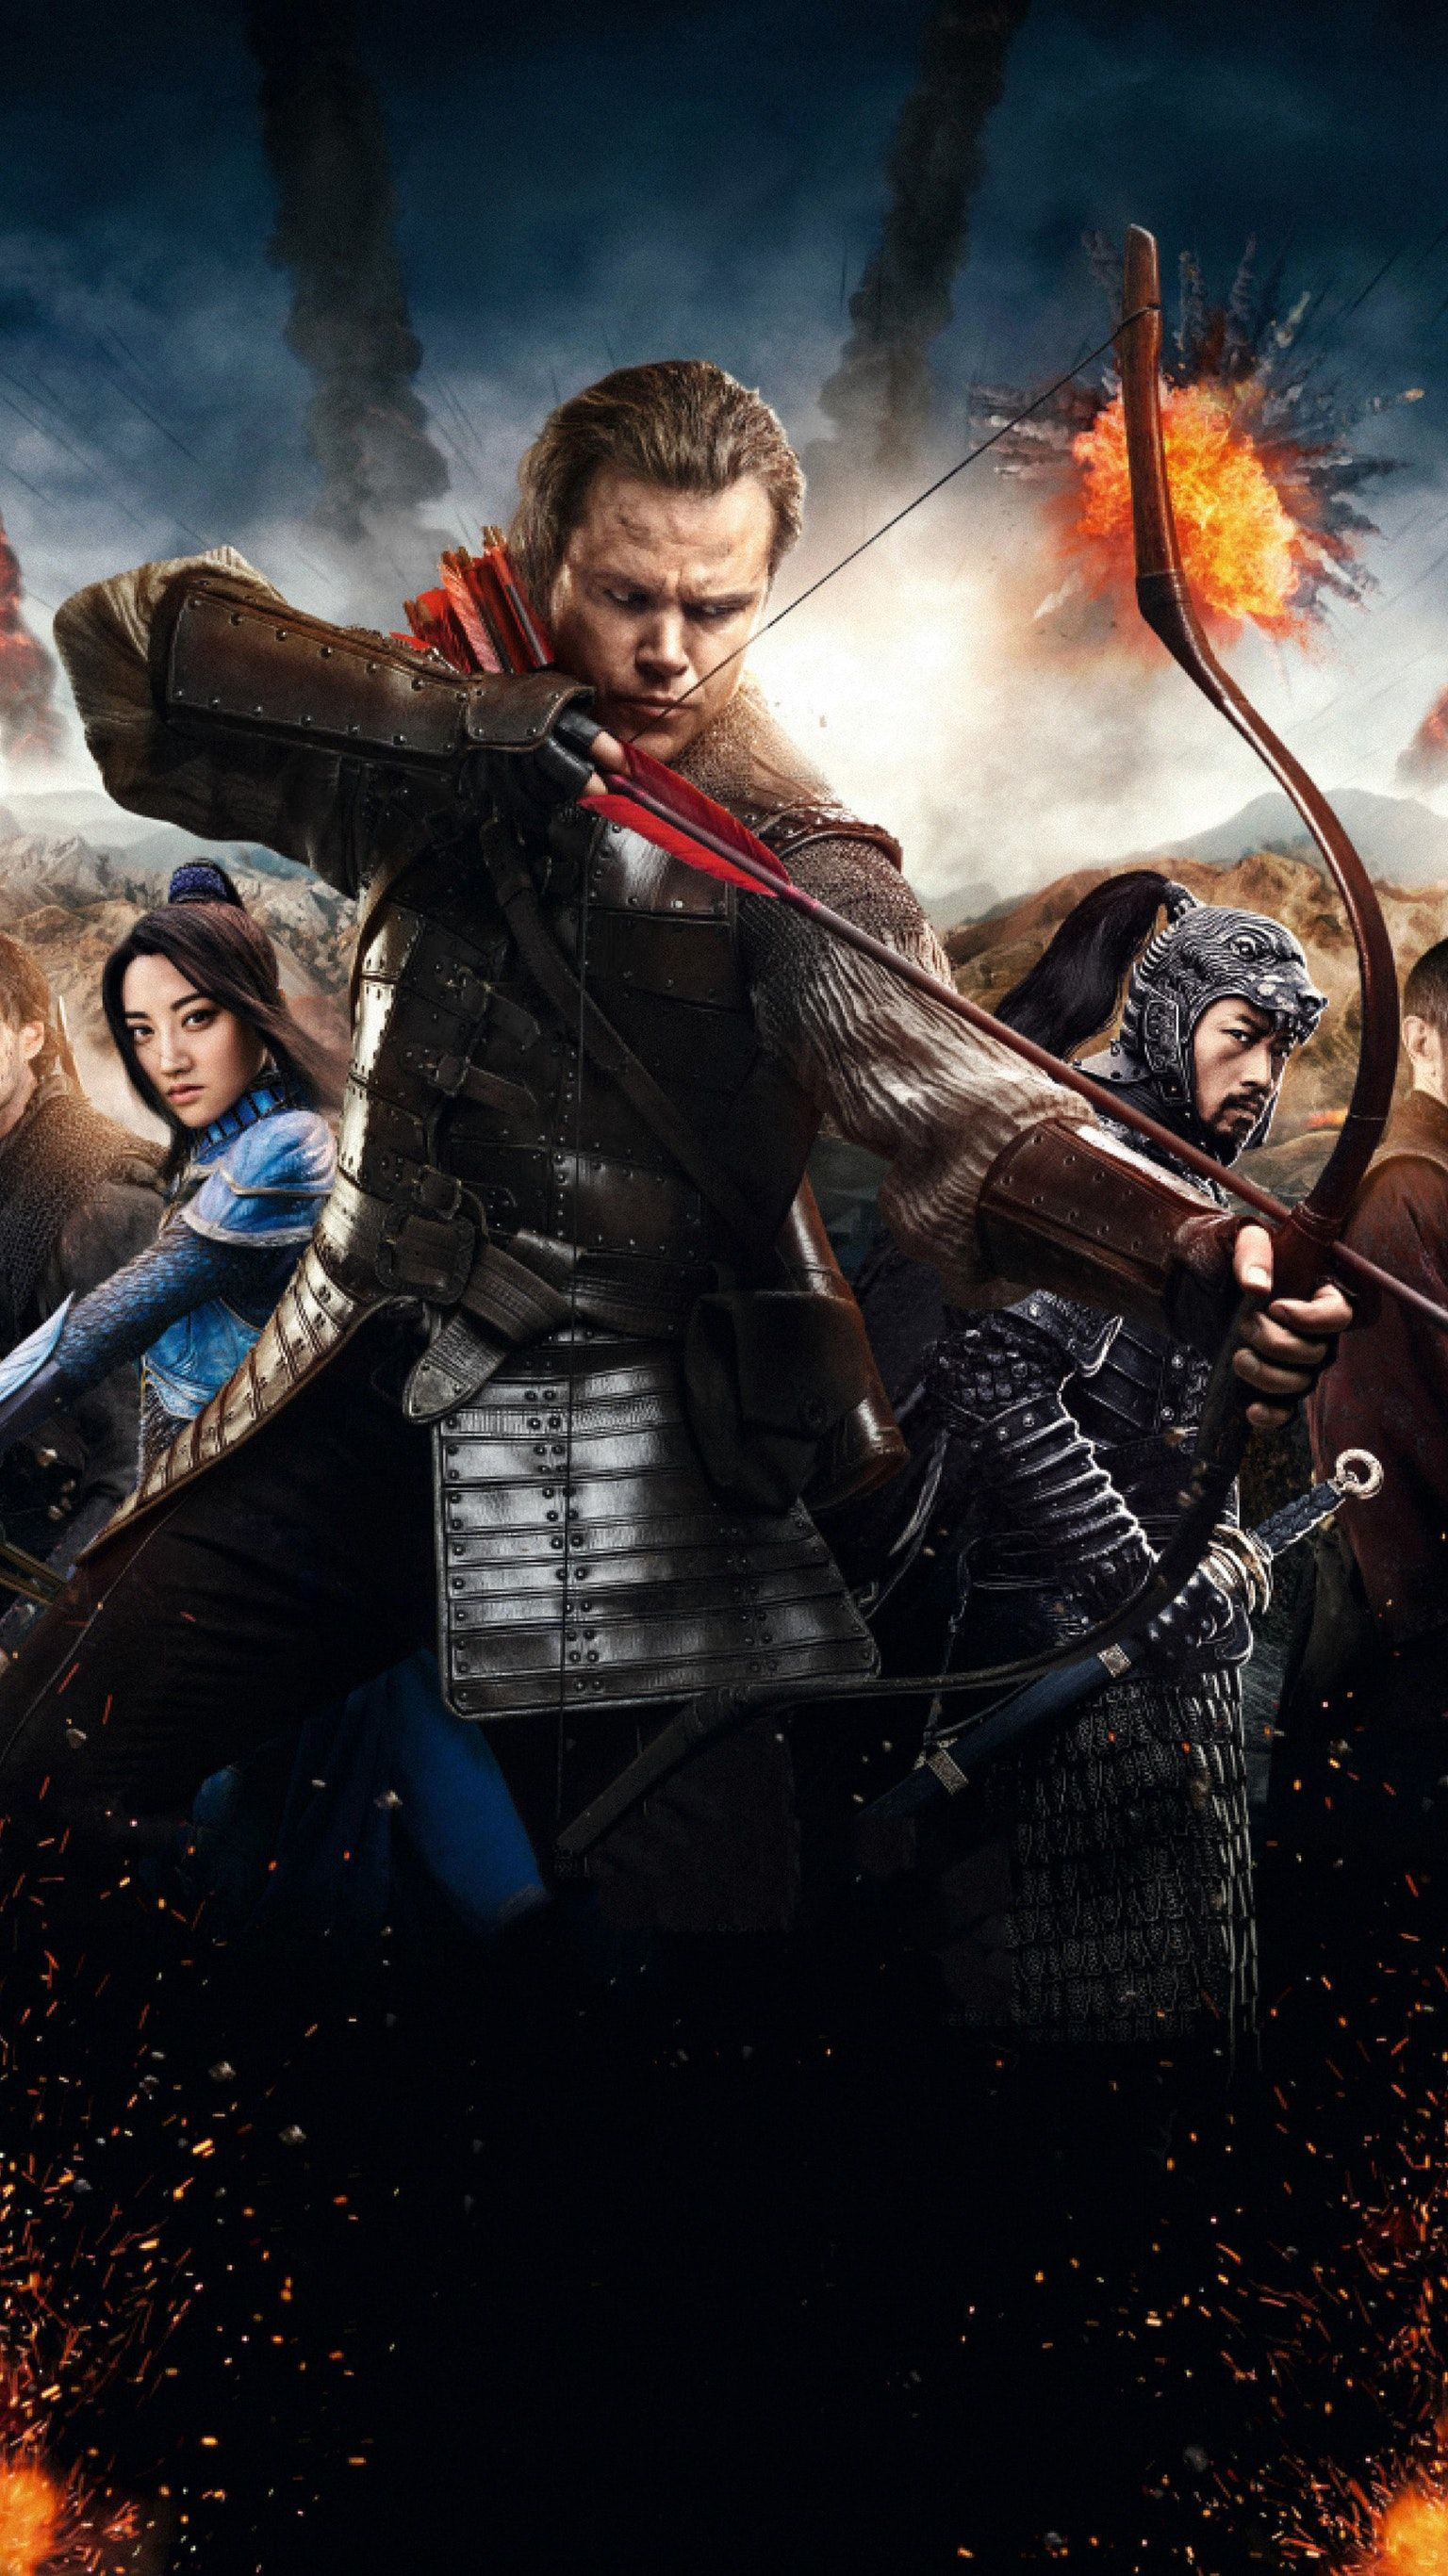 The Great Wall 2016 Phone Wallpaper Bioskop Film Dan Komedi